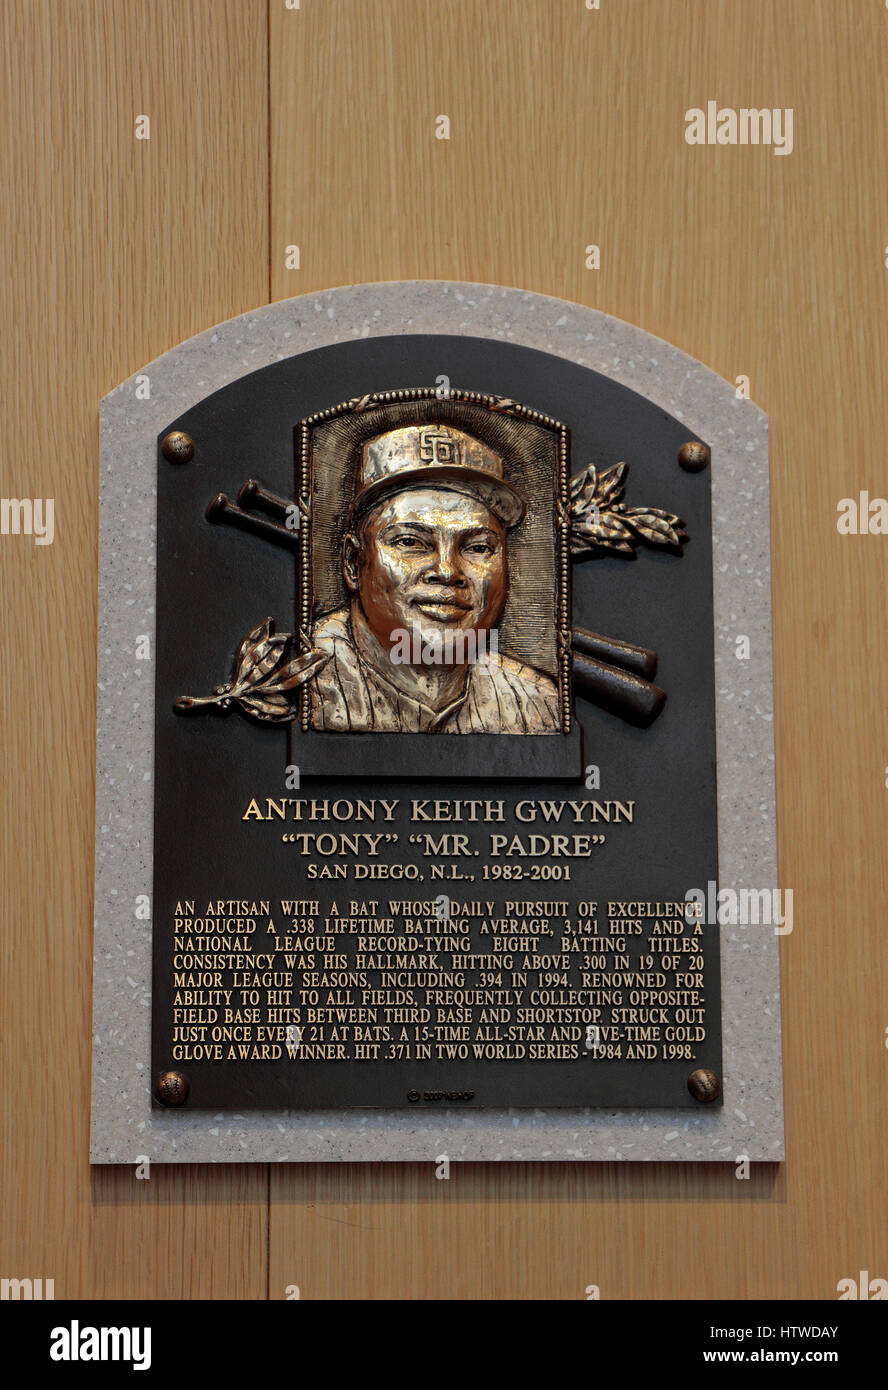 Memorial plaque for right fielder Tony Gwynn in the Hall of Fame Gallery, National Baseball Hall of Fame & Museum, - Stock Image